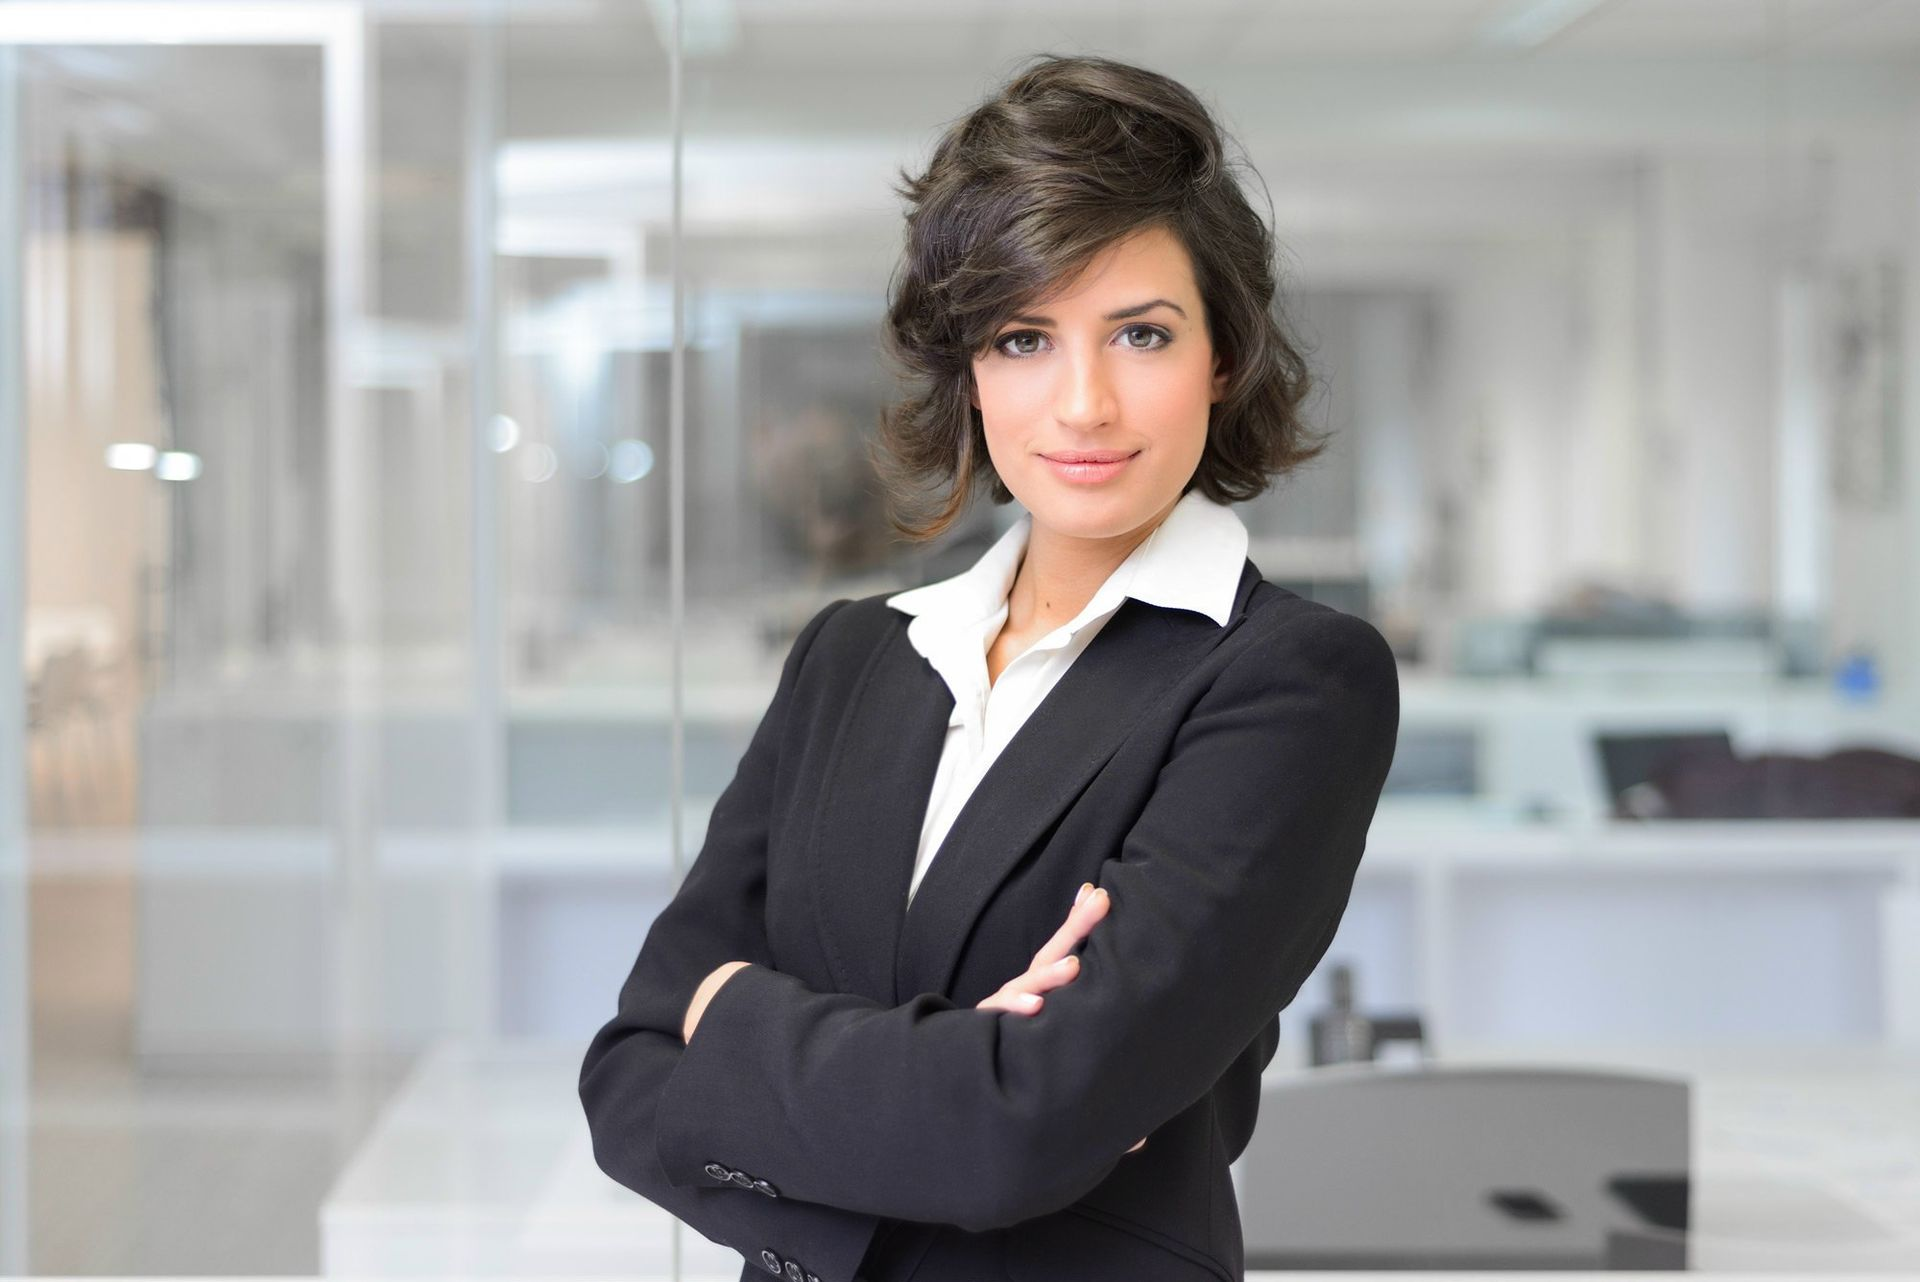 3 Common Interview Questions Women Get Asked